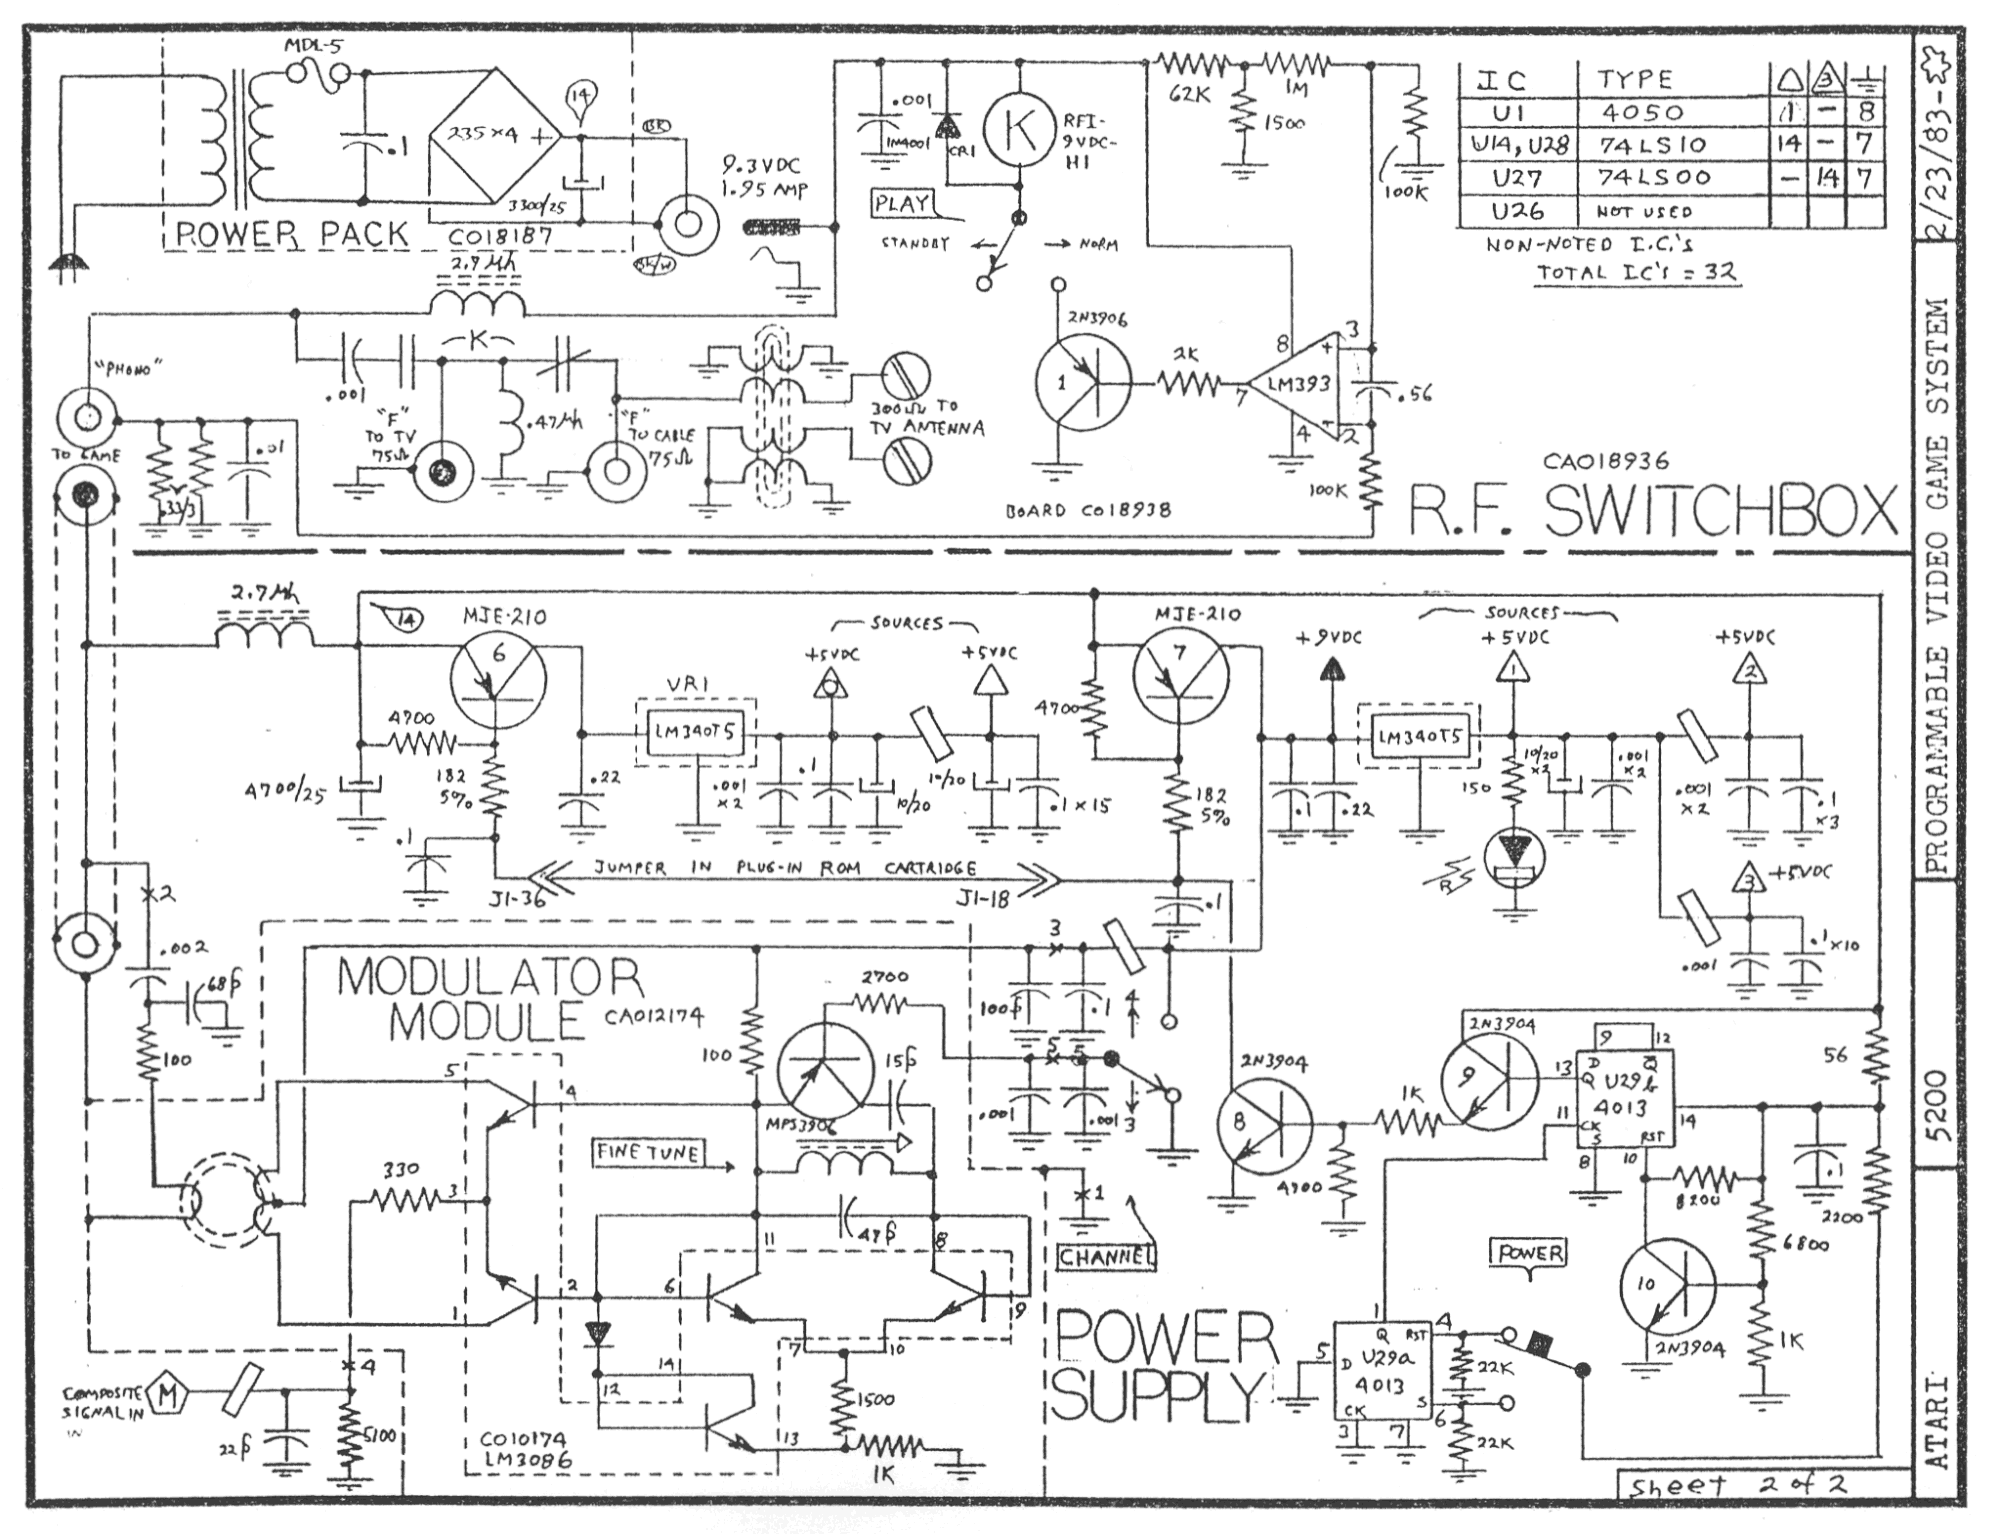 Atari Rf Switchbox Schematic